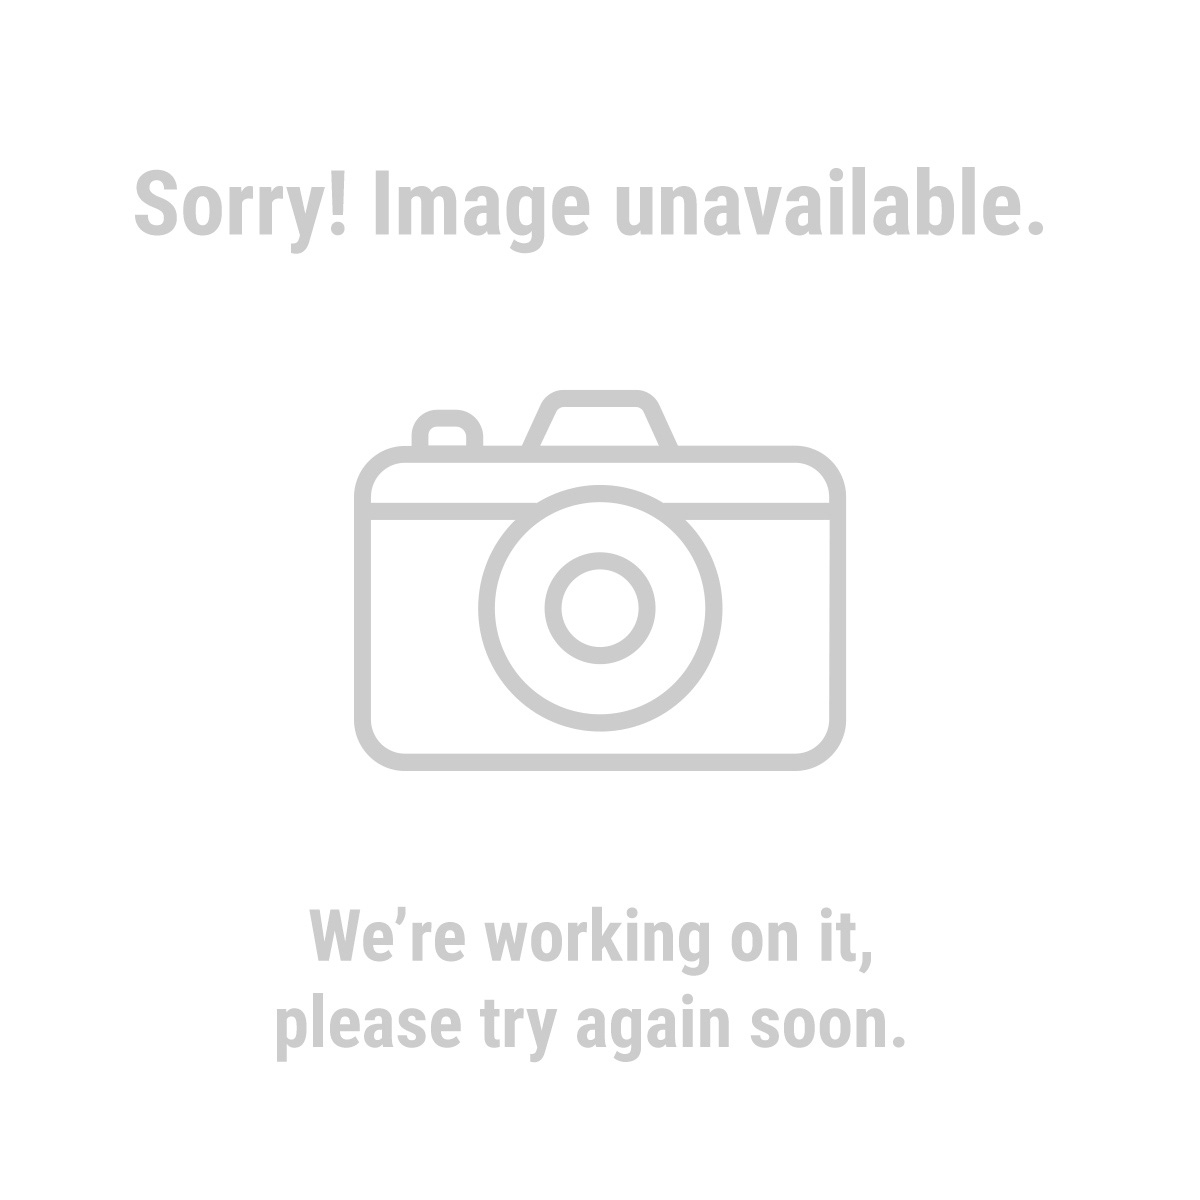 Warrior 69604 Grit Flap Disc